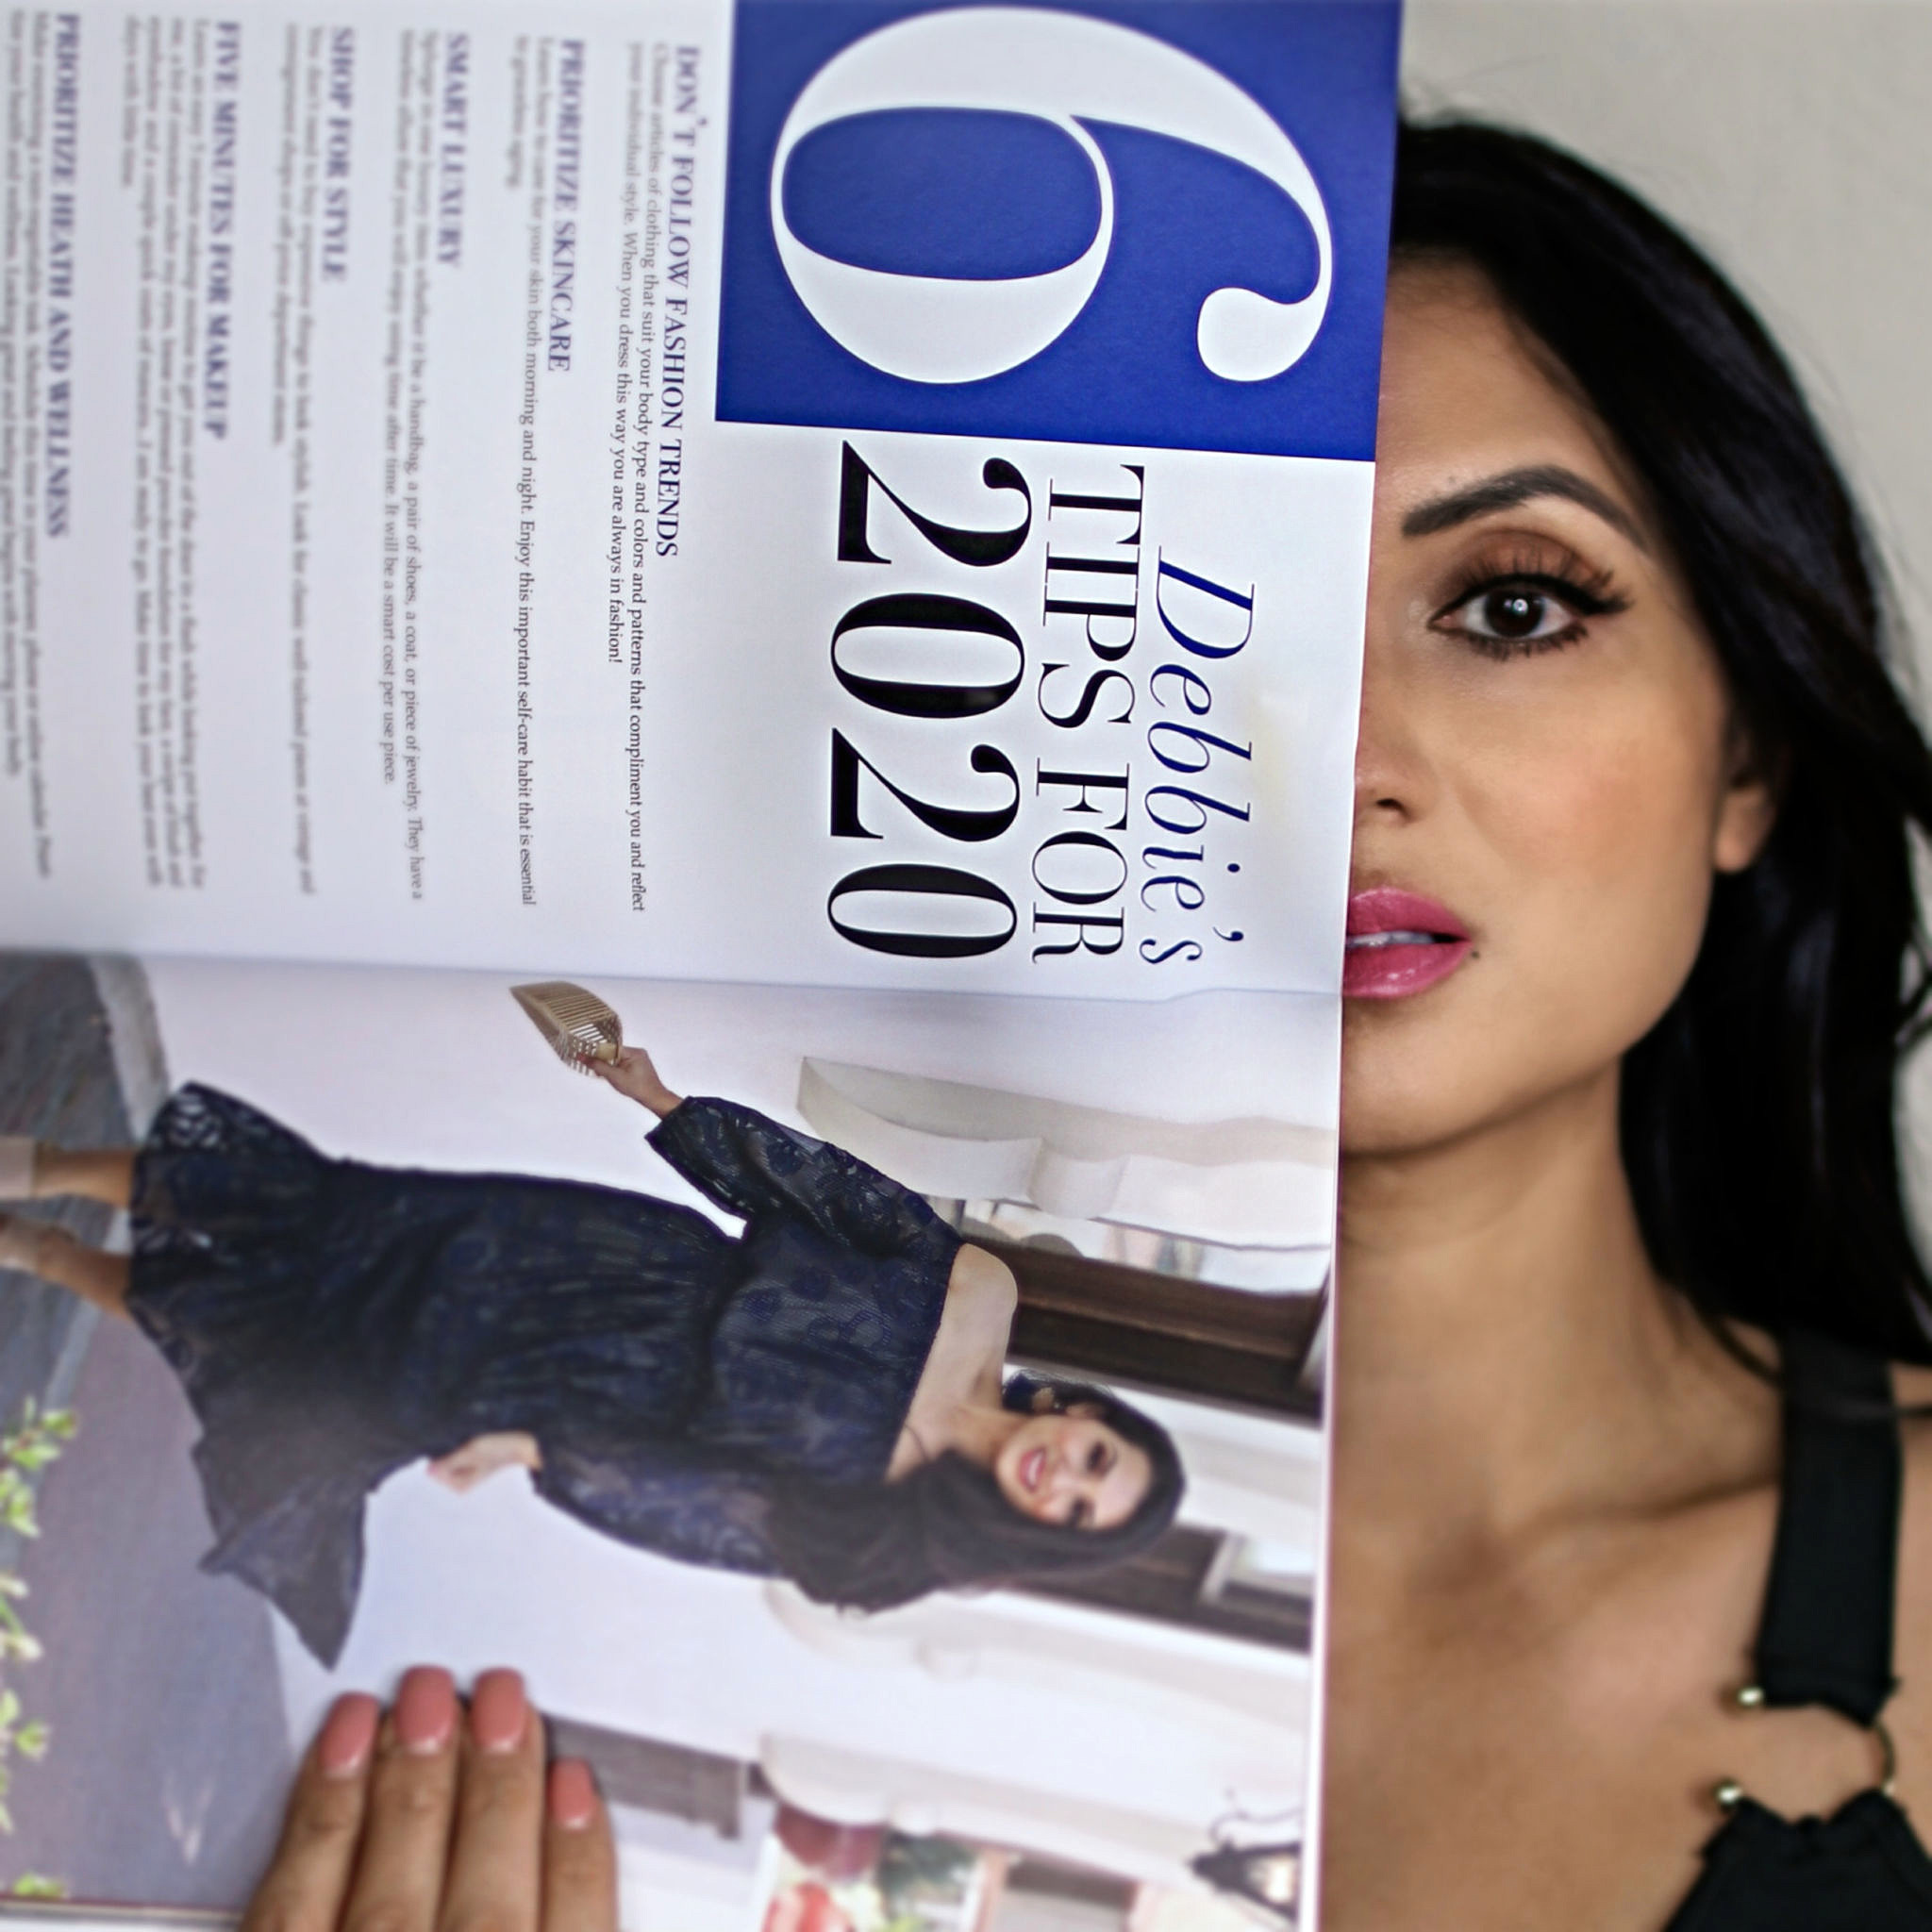 My First Magazine Feature - An Eight Page Spread in Uploader Magazine!